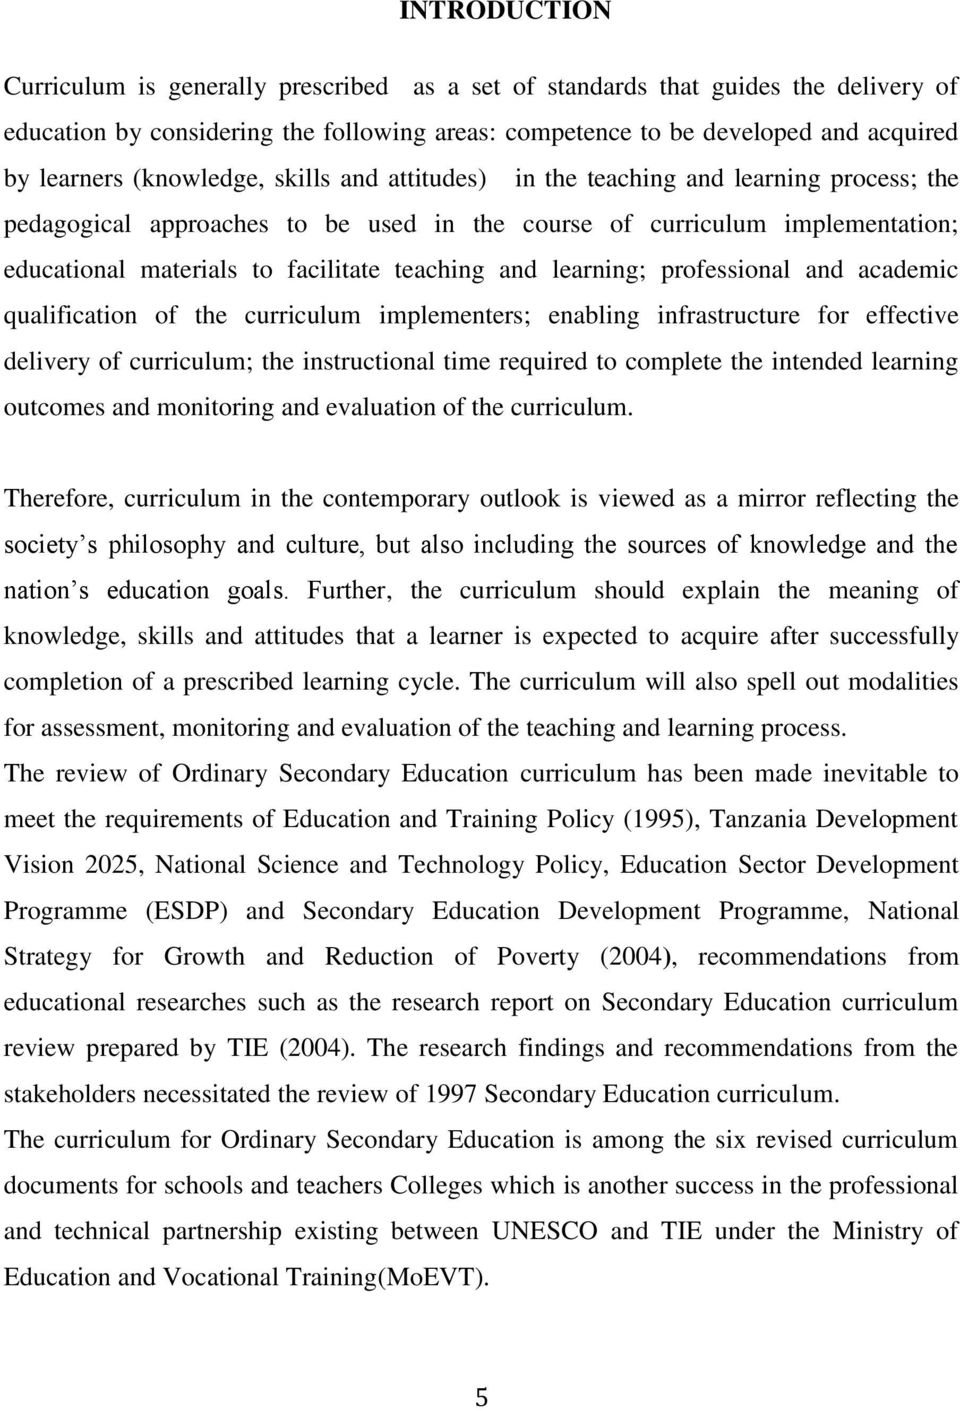 and learning; professional and academic qualification of the curriculum implementers; enabling infrastructure for effective delivery of curriculum; the instructional time required to complete the